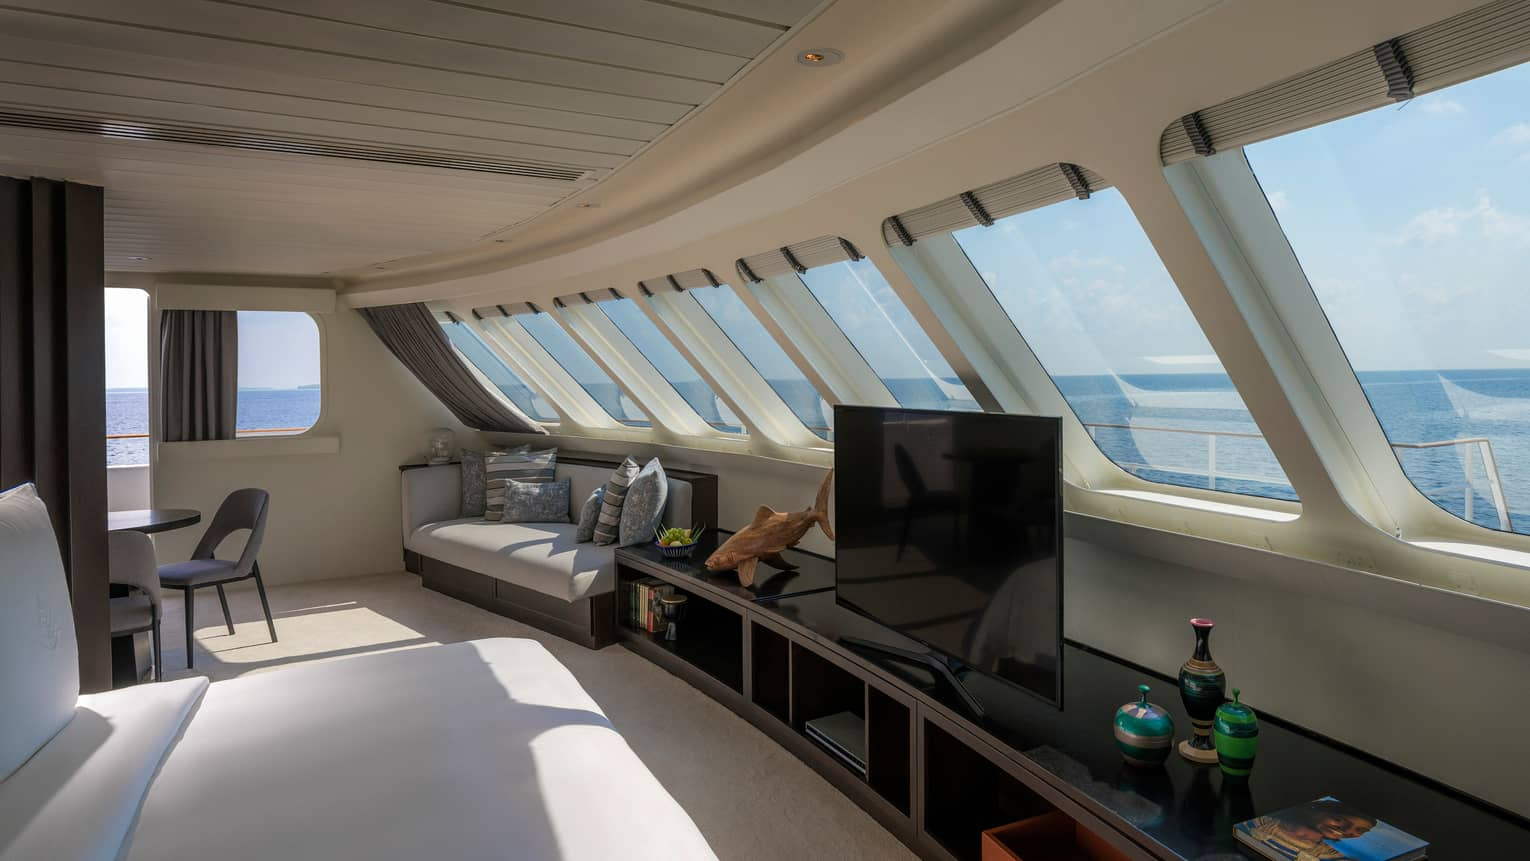 Seating area inside yacht with row of curved windows, dresser with TV, bench